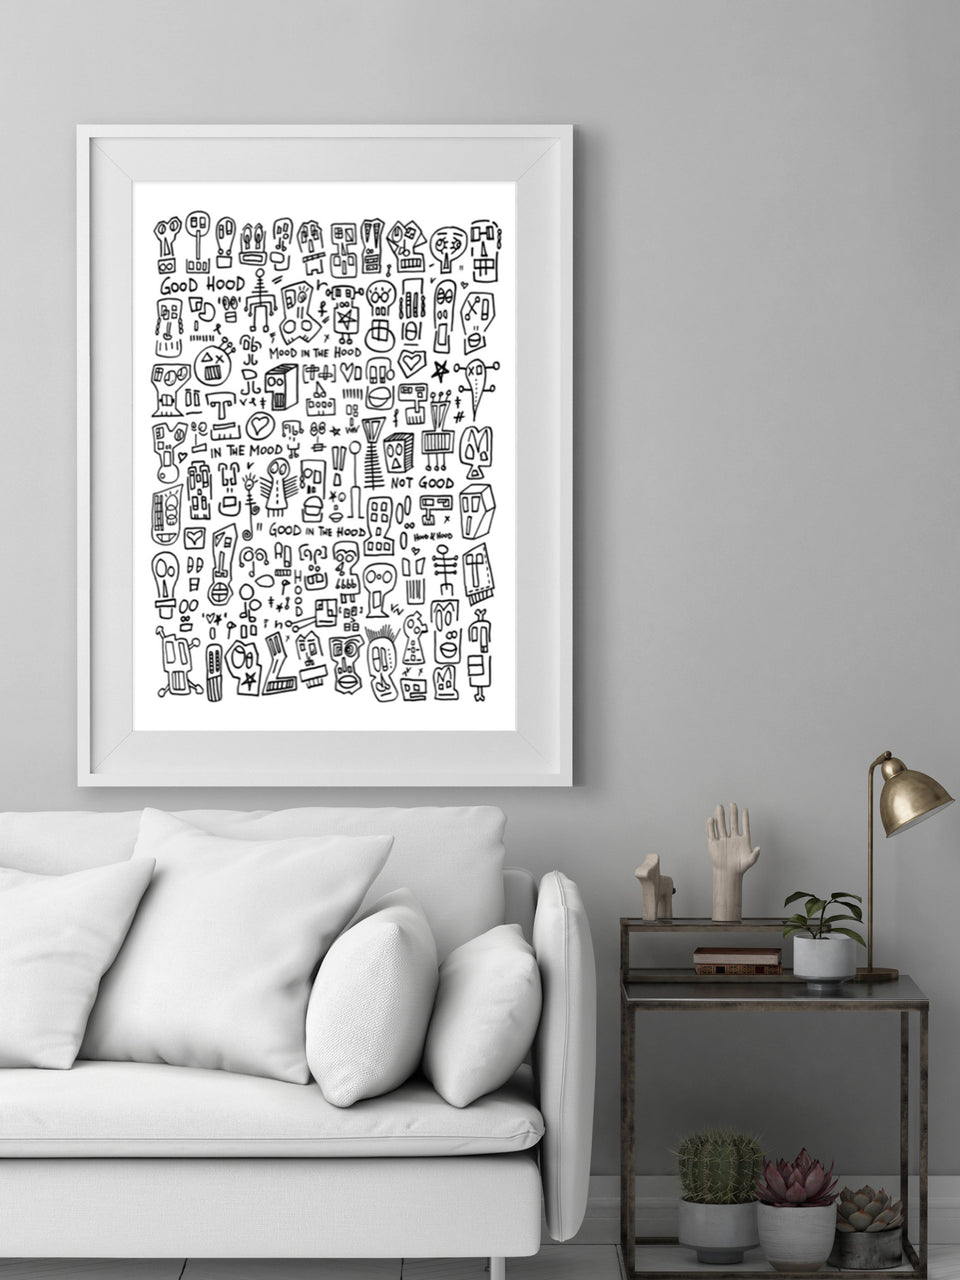 Raul street art abstract print black and white graffiti style